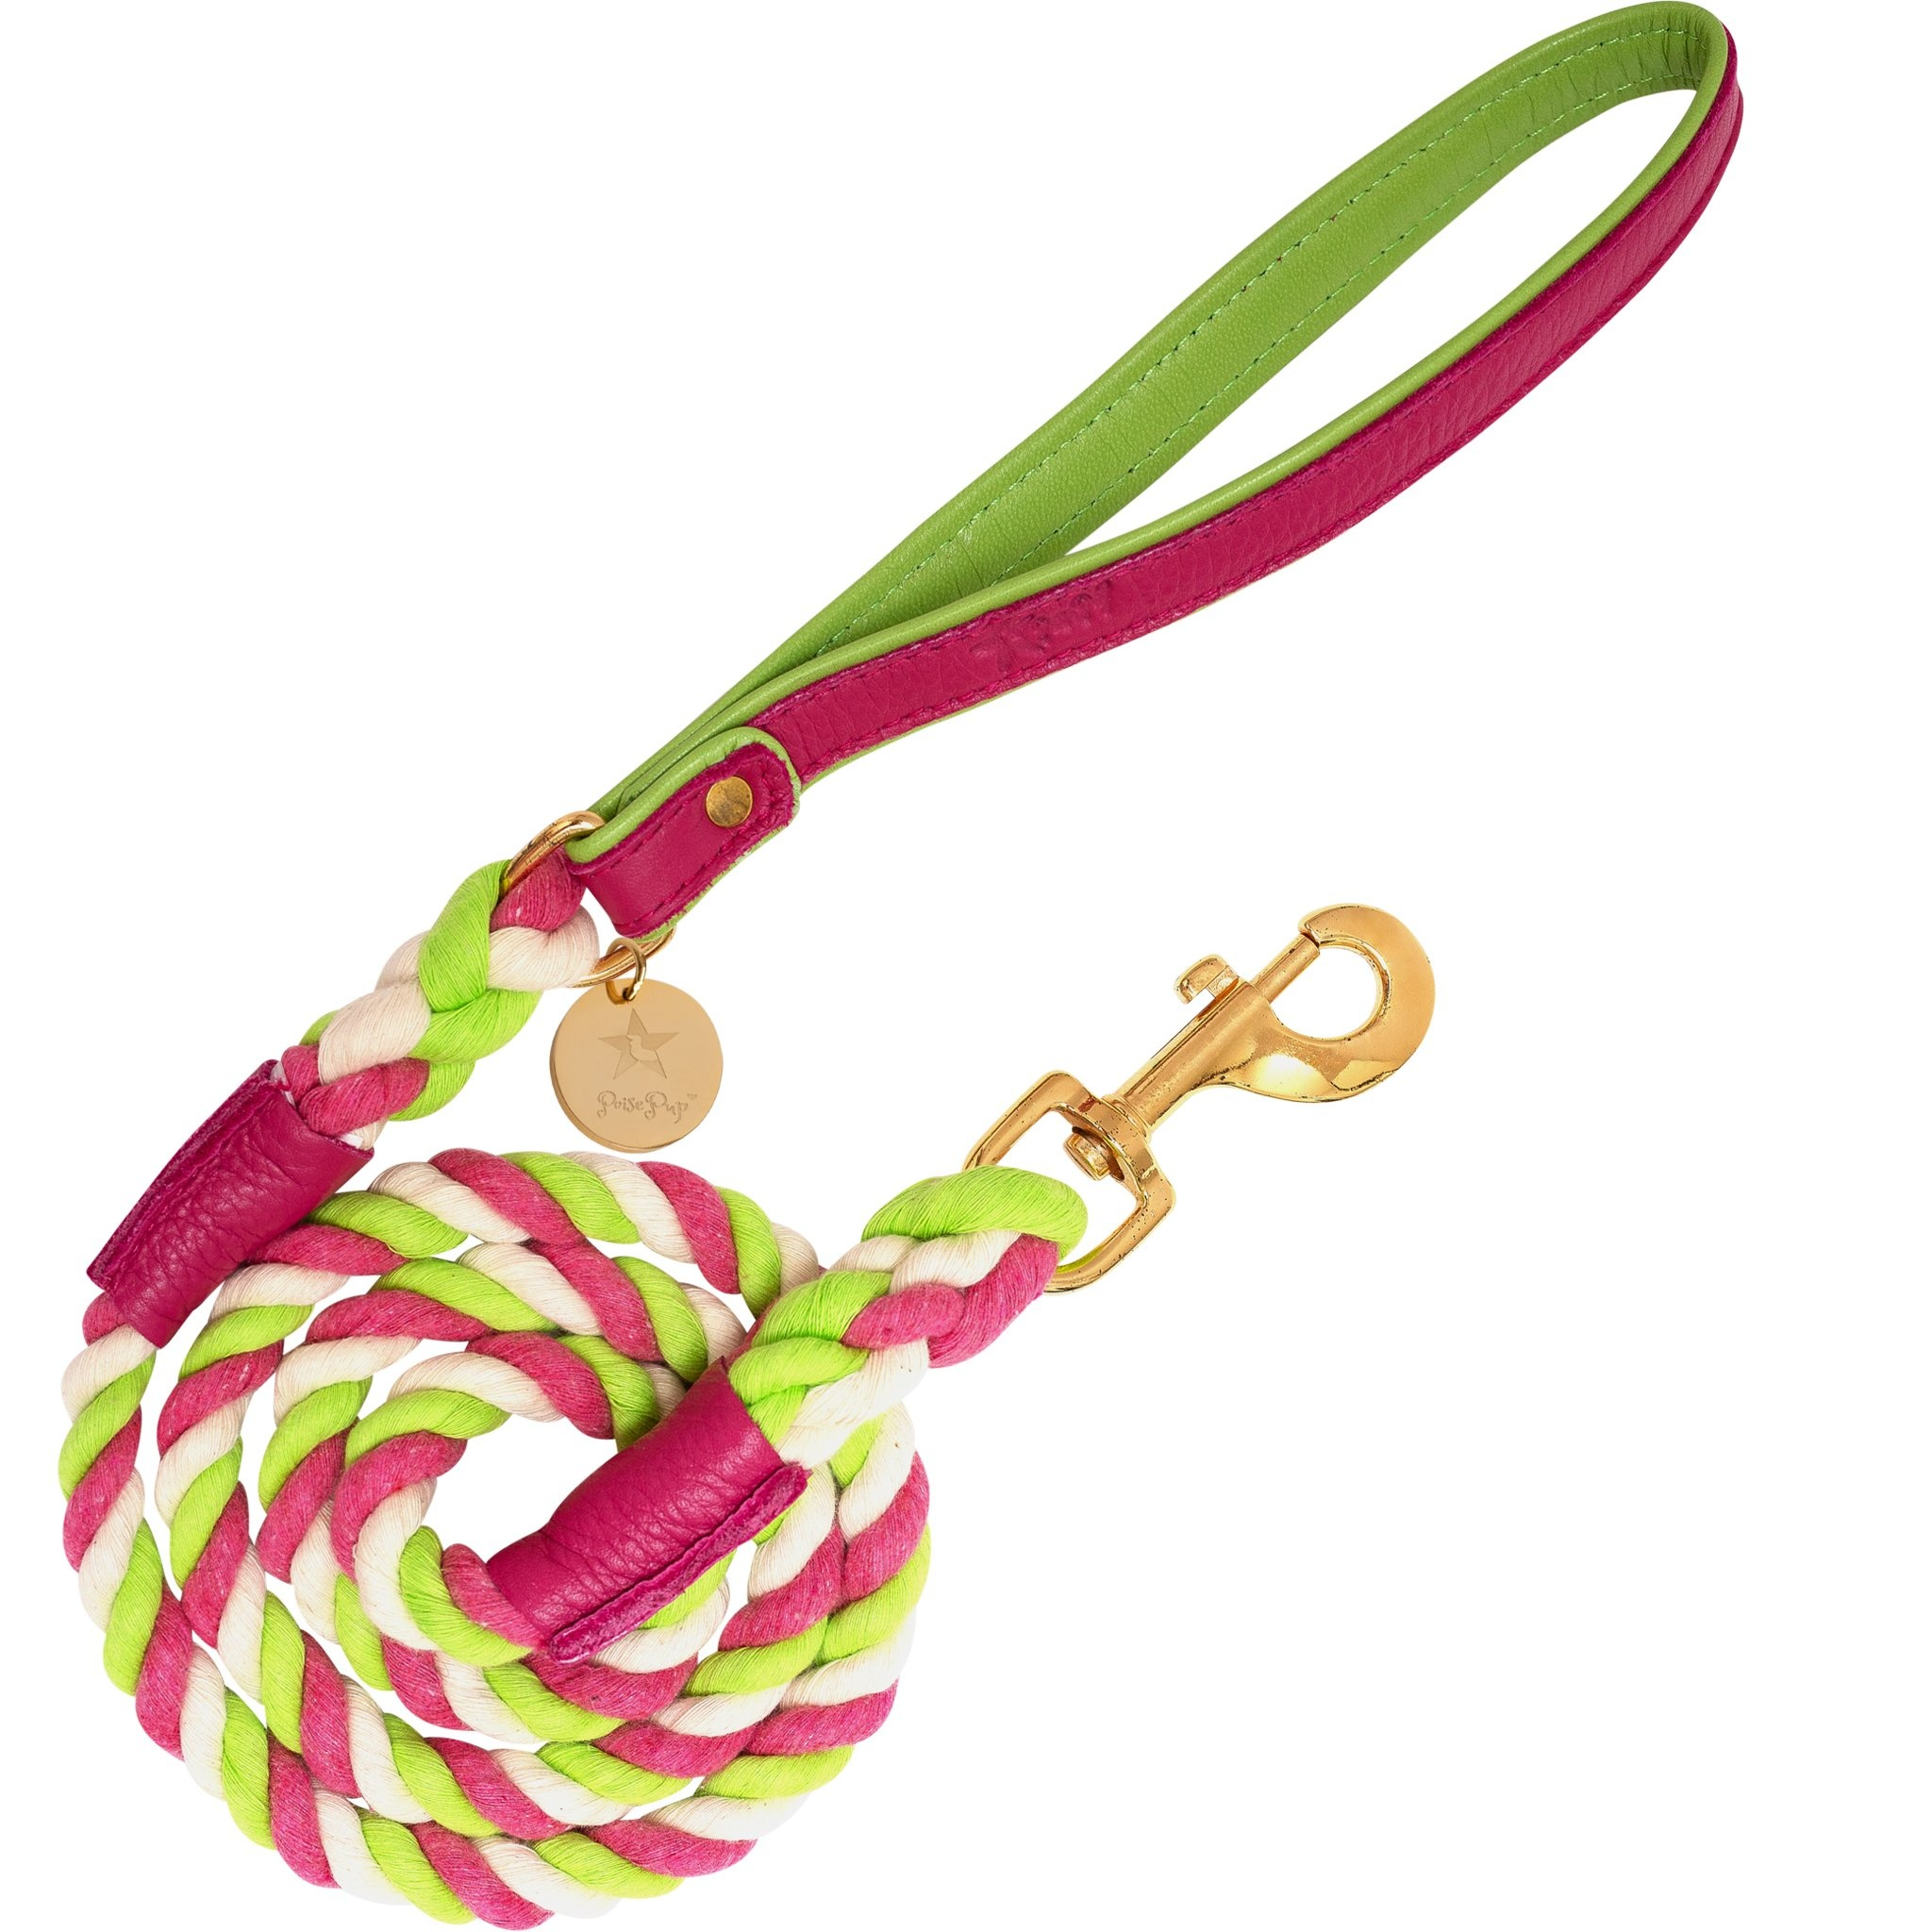 Poise Pup Rope Leash Candy Swirl w Leather Handle